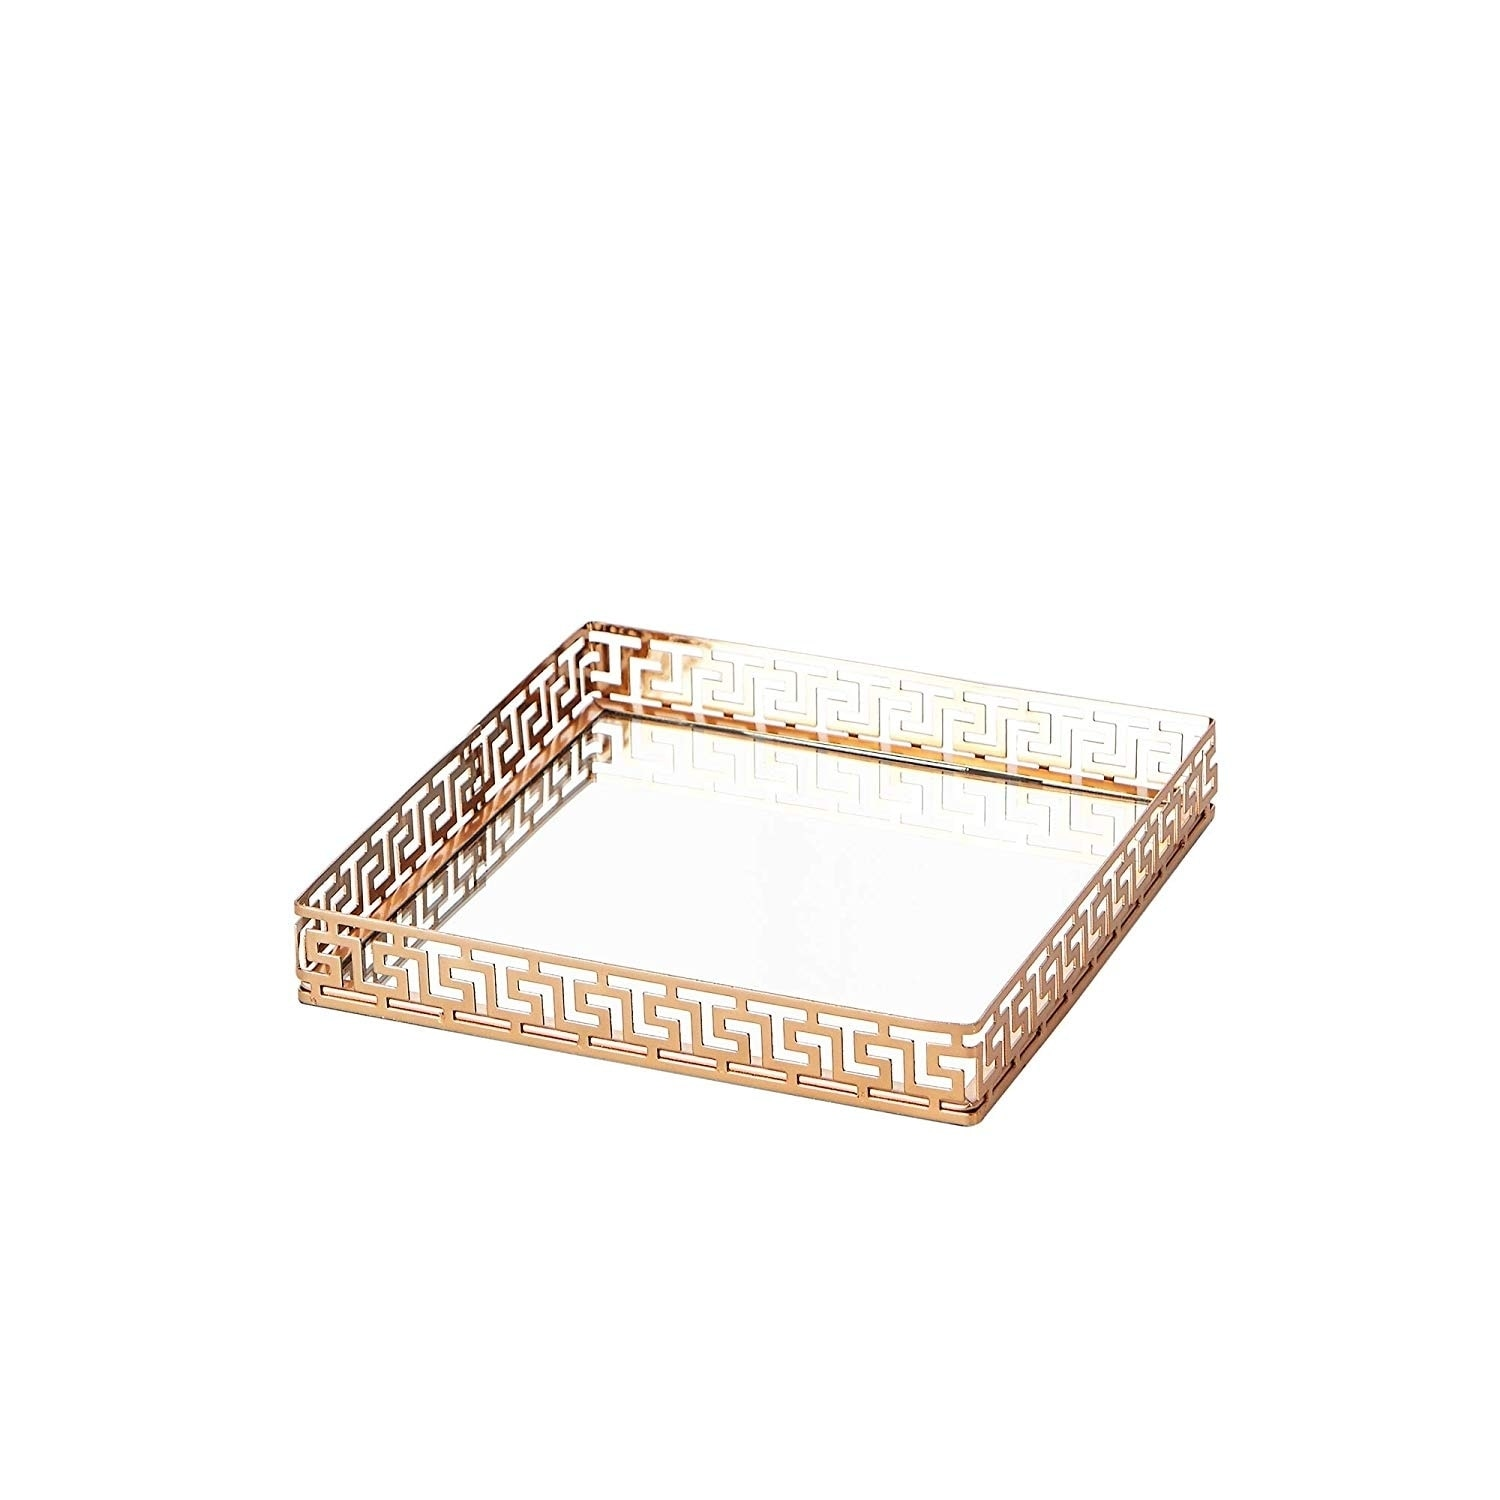 FairDeco Rose Gold Electroplating Ceramic Leaf Trays Small Jewelry Storage Box Decorative Centerpiece Accents